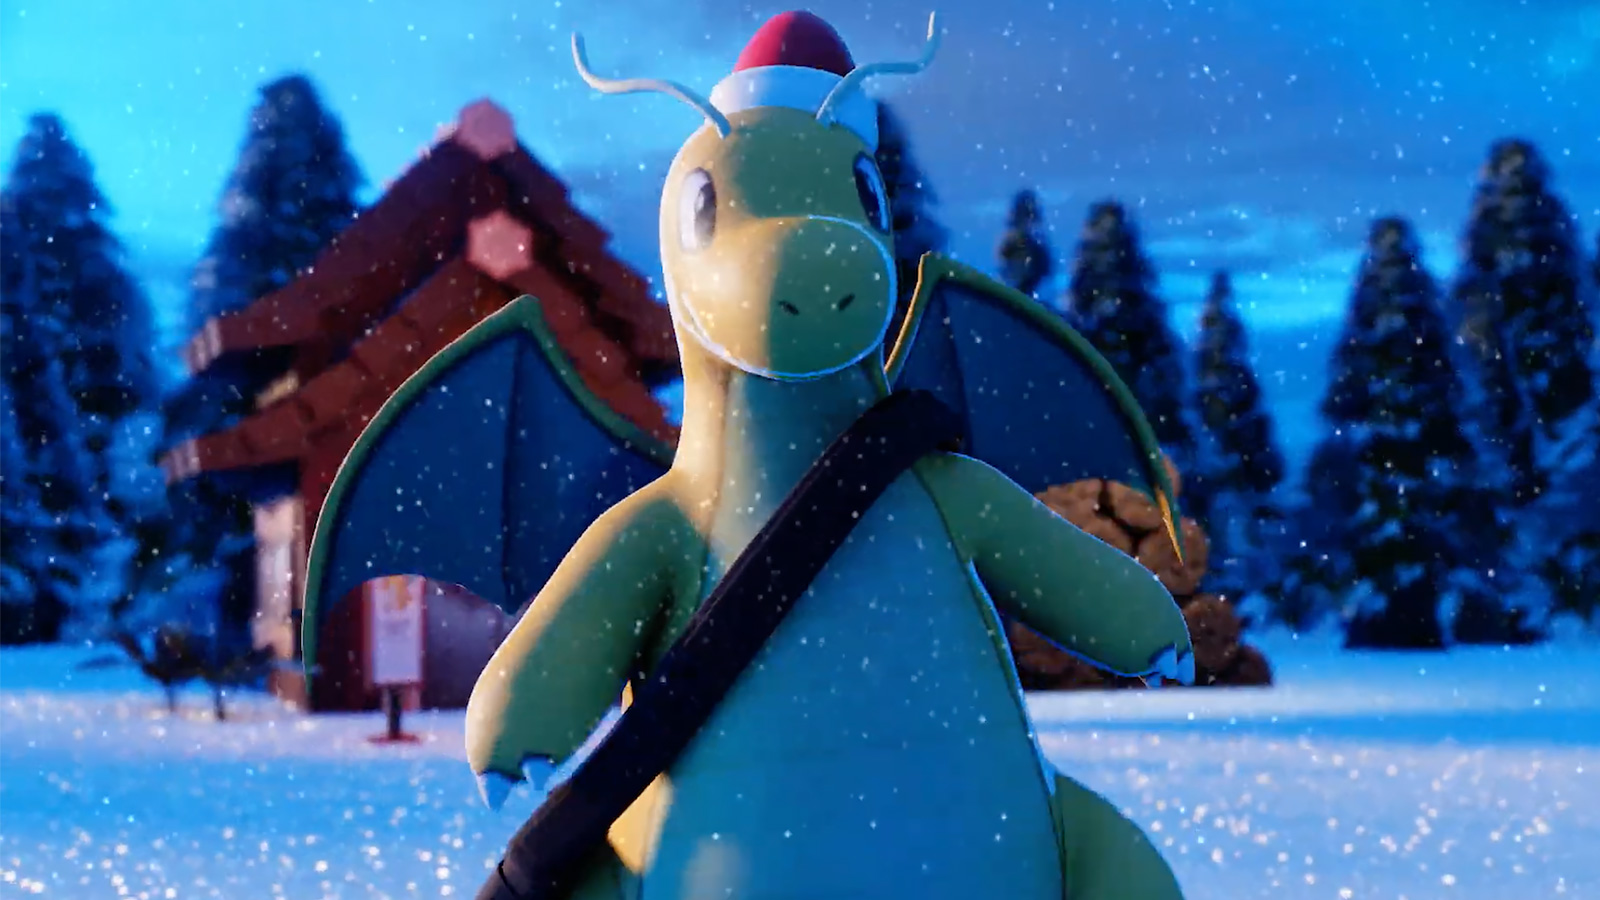 Screenshot of Dragonite in Christmas animation by Gio.